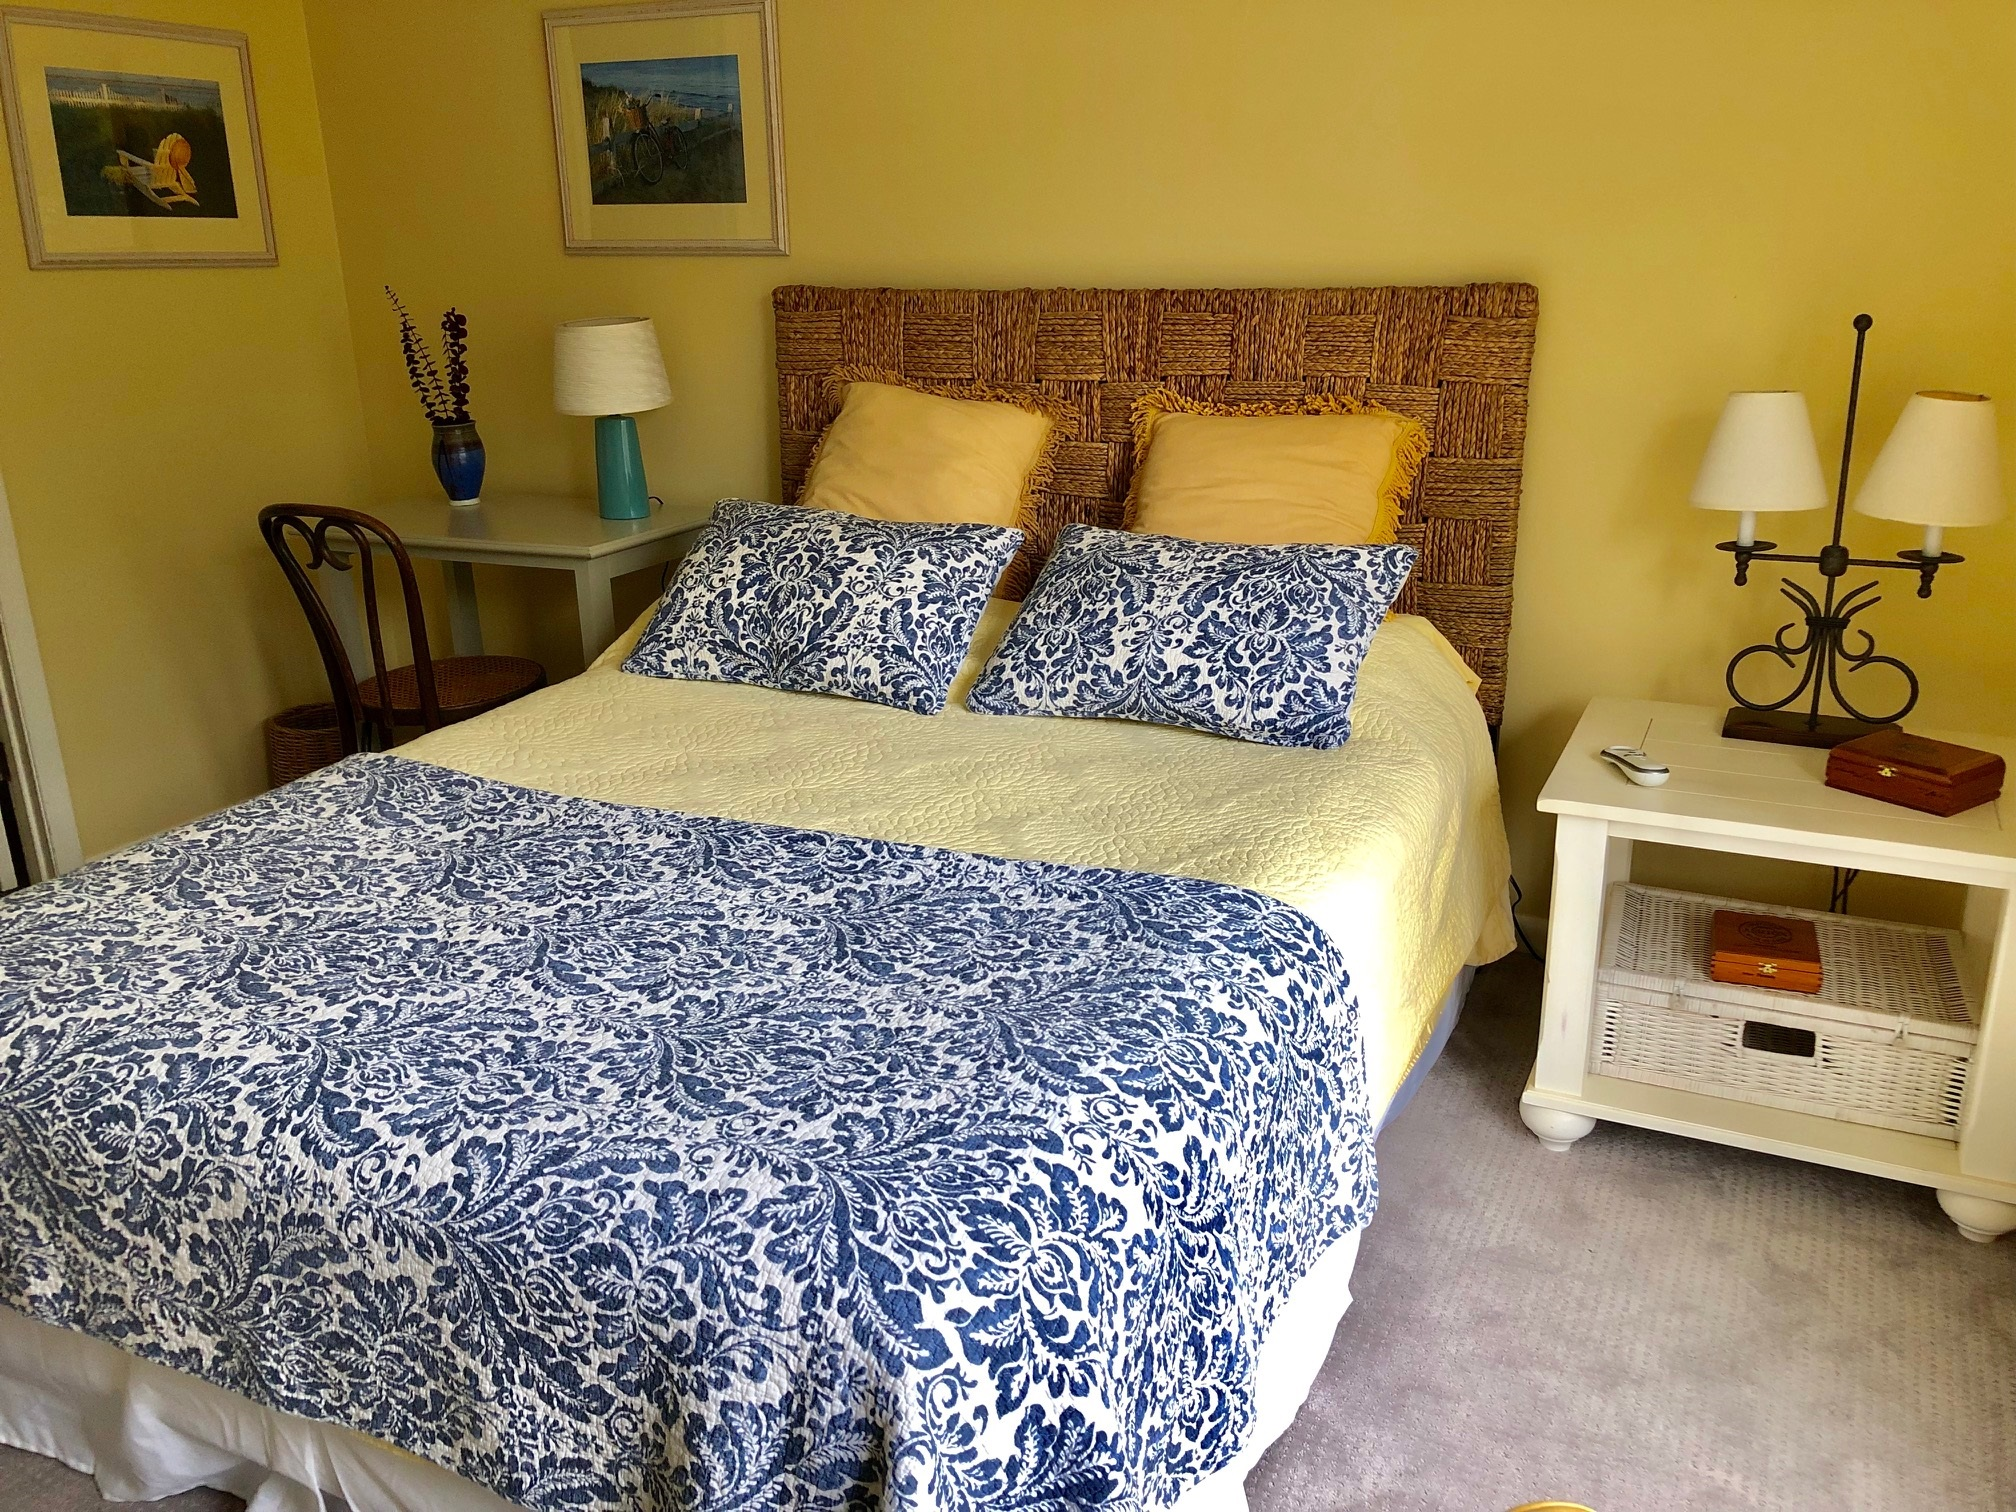 Guest bedroom with writing desk